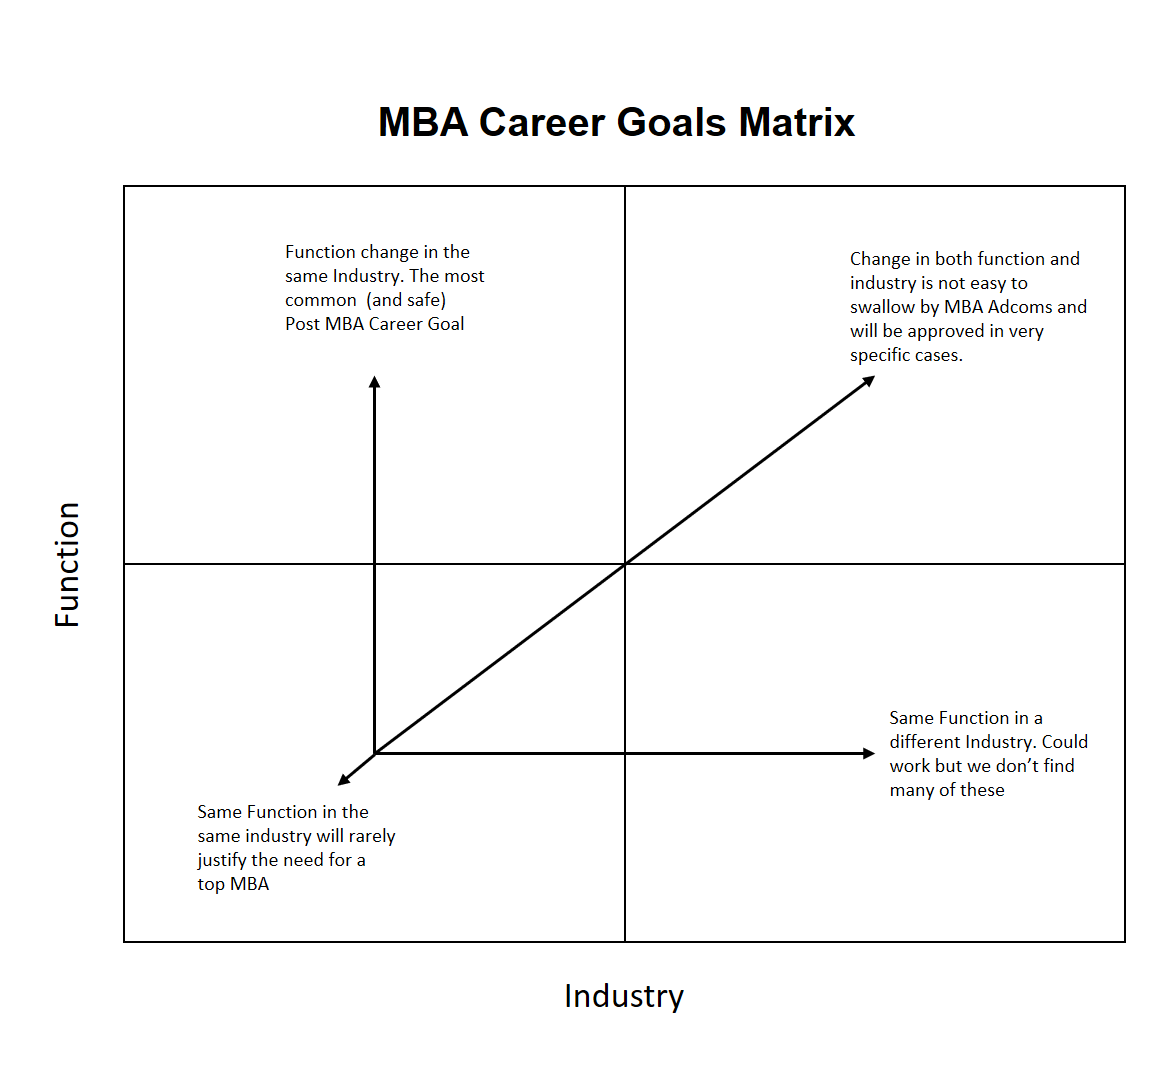 mba career change essay Mba essay writing mba though it would be a challenge to change their traditional extracurricular activities, awards, post-mba career goals, test.